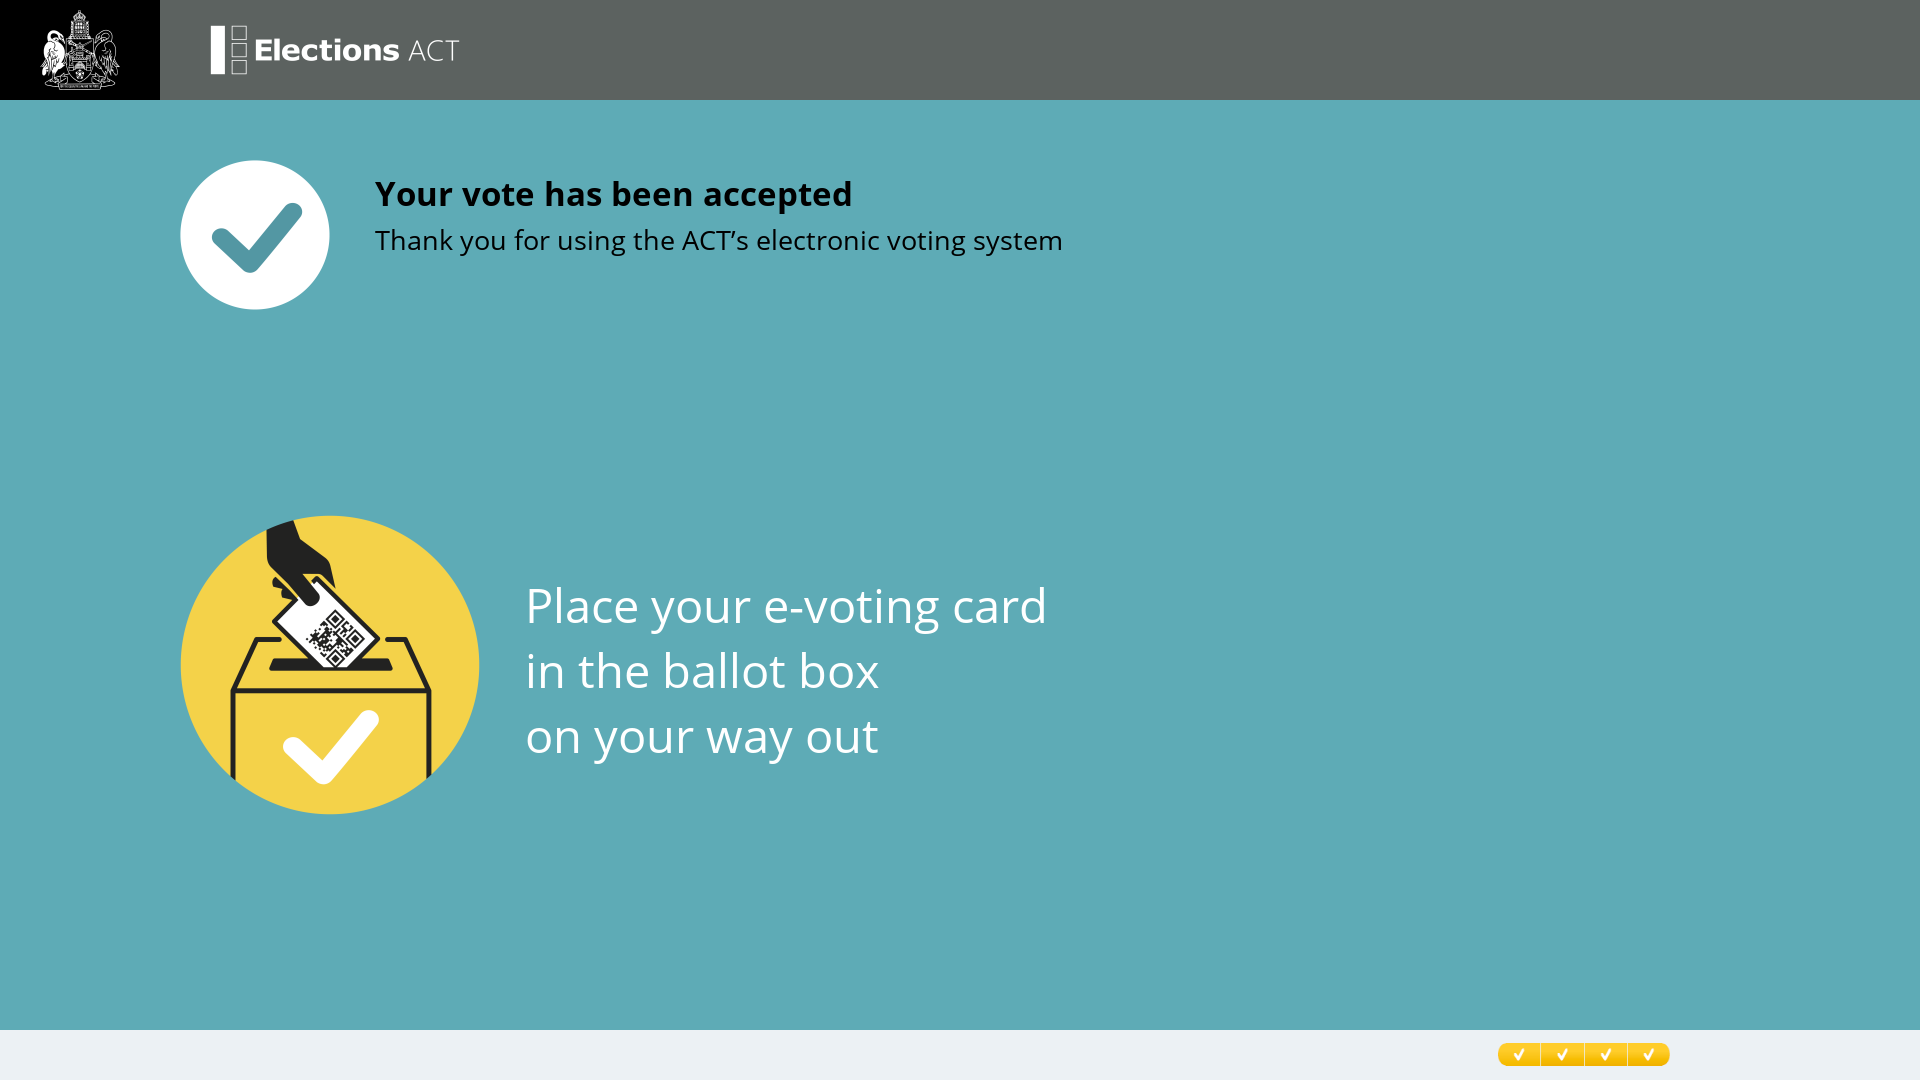 e-voting accepted screen